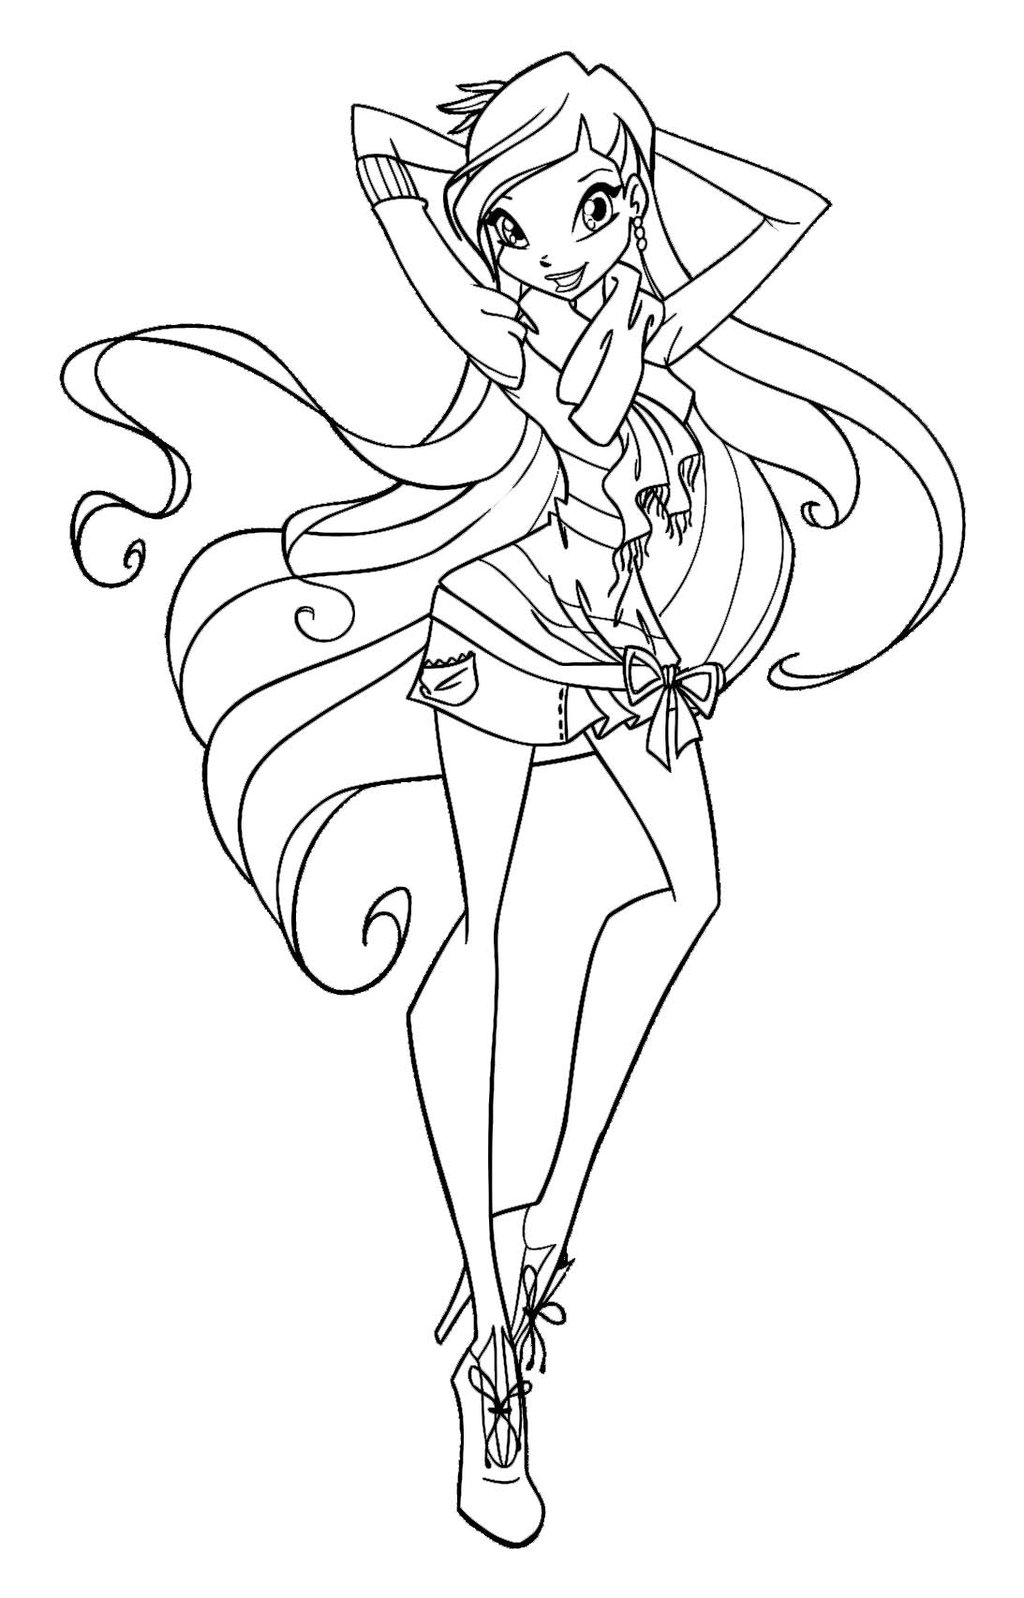 winx club coloring pages stella - winx club coloring pages 360coloringpages